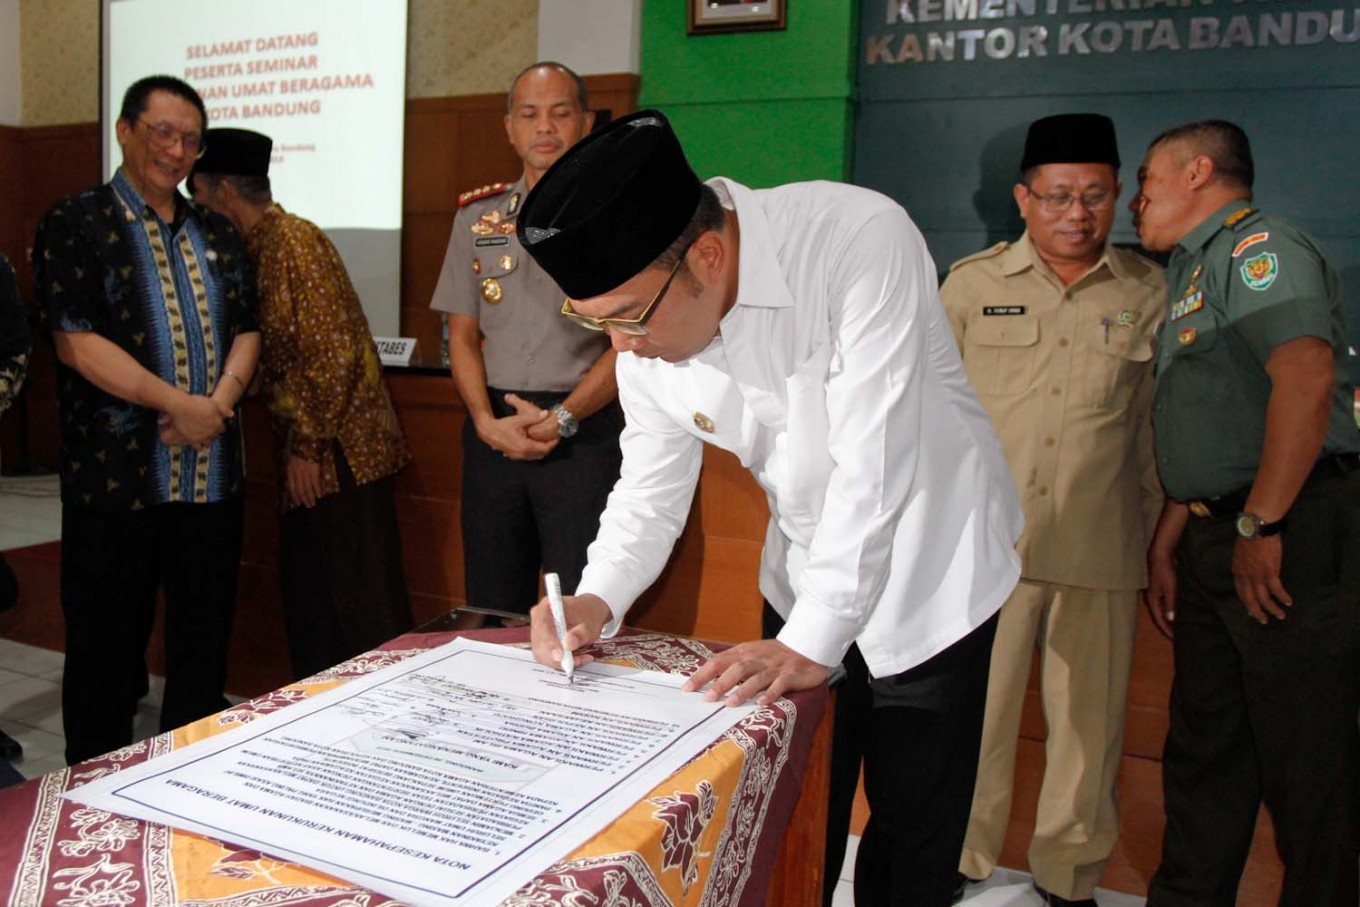 Bandung mayor forms tolerance task force following intolerant incidents